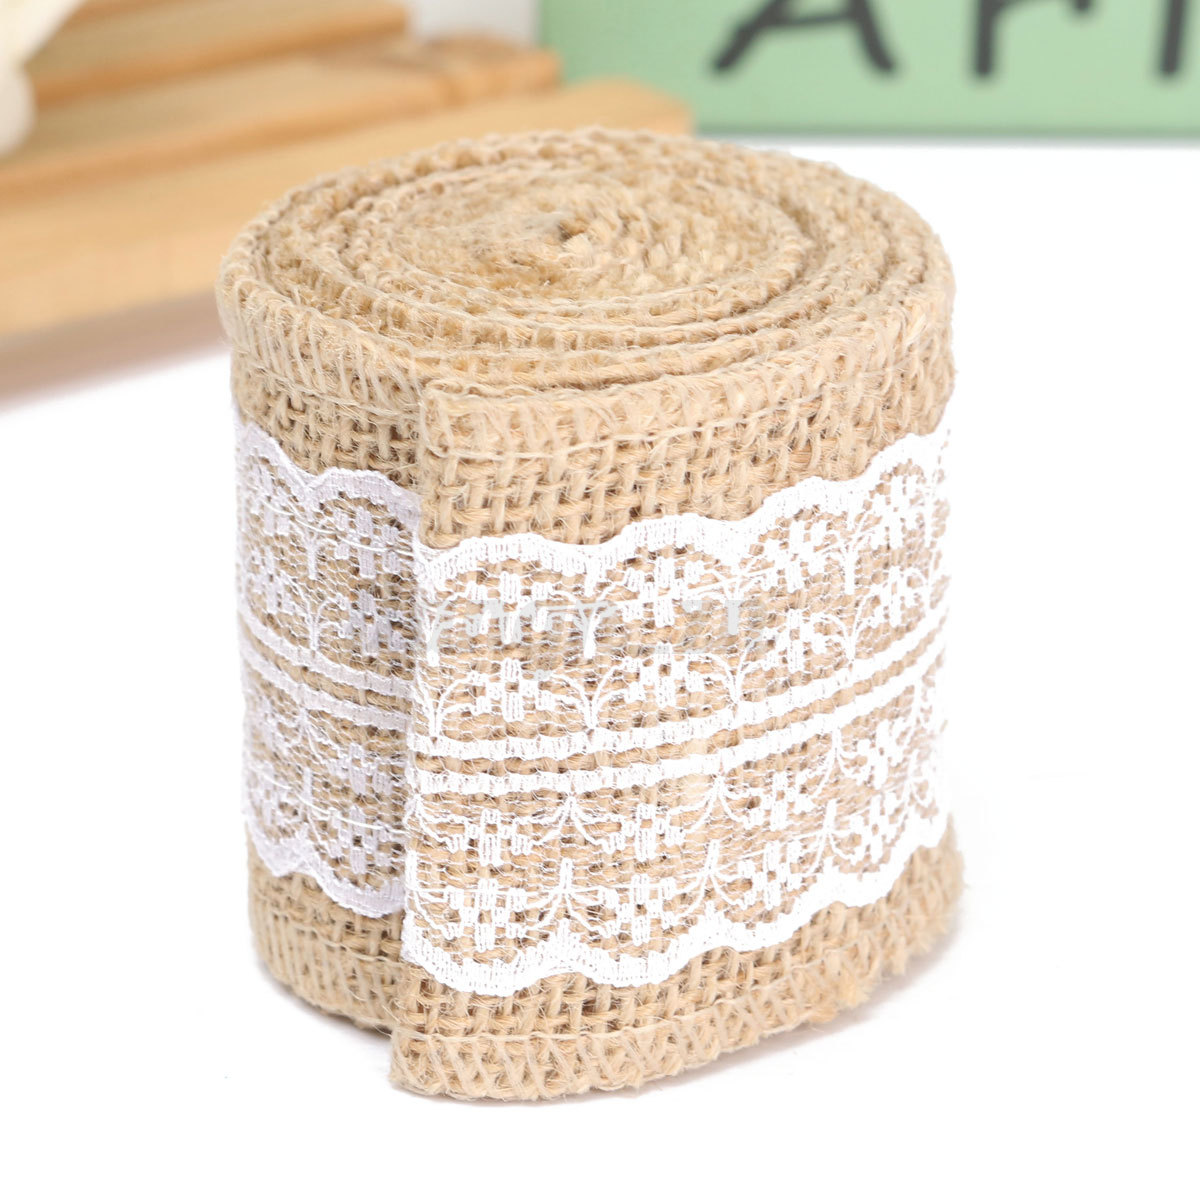 2m couleur rouleau de ruban toile jute dentelle bordure bande mariage d cor diy ebay. Black Bedroom Furniture Sets. Home Design Ideas